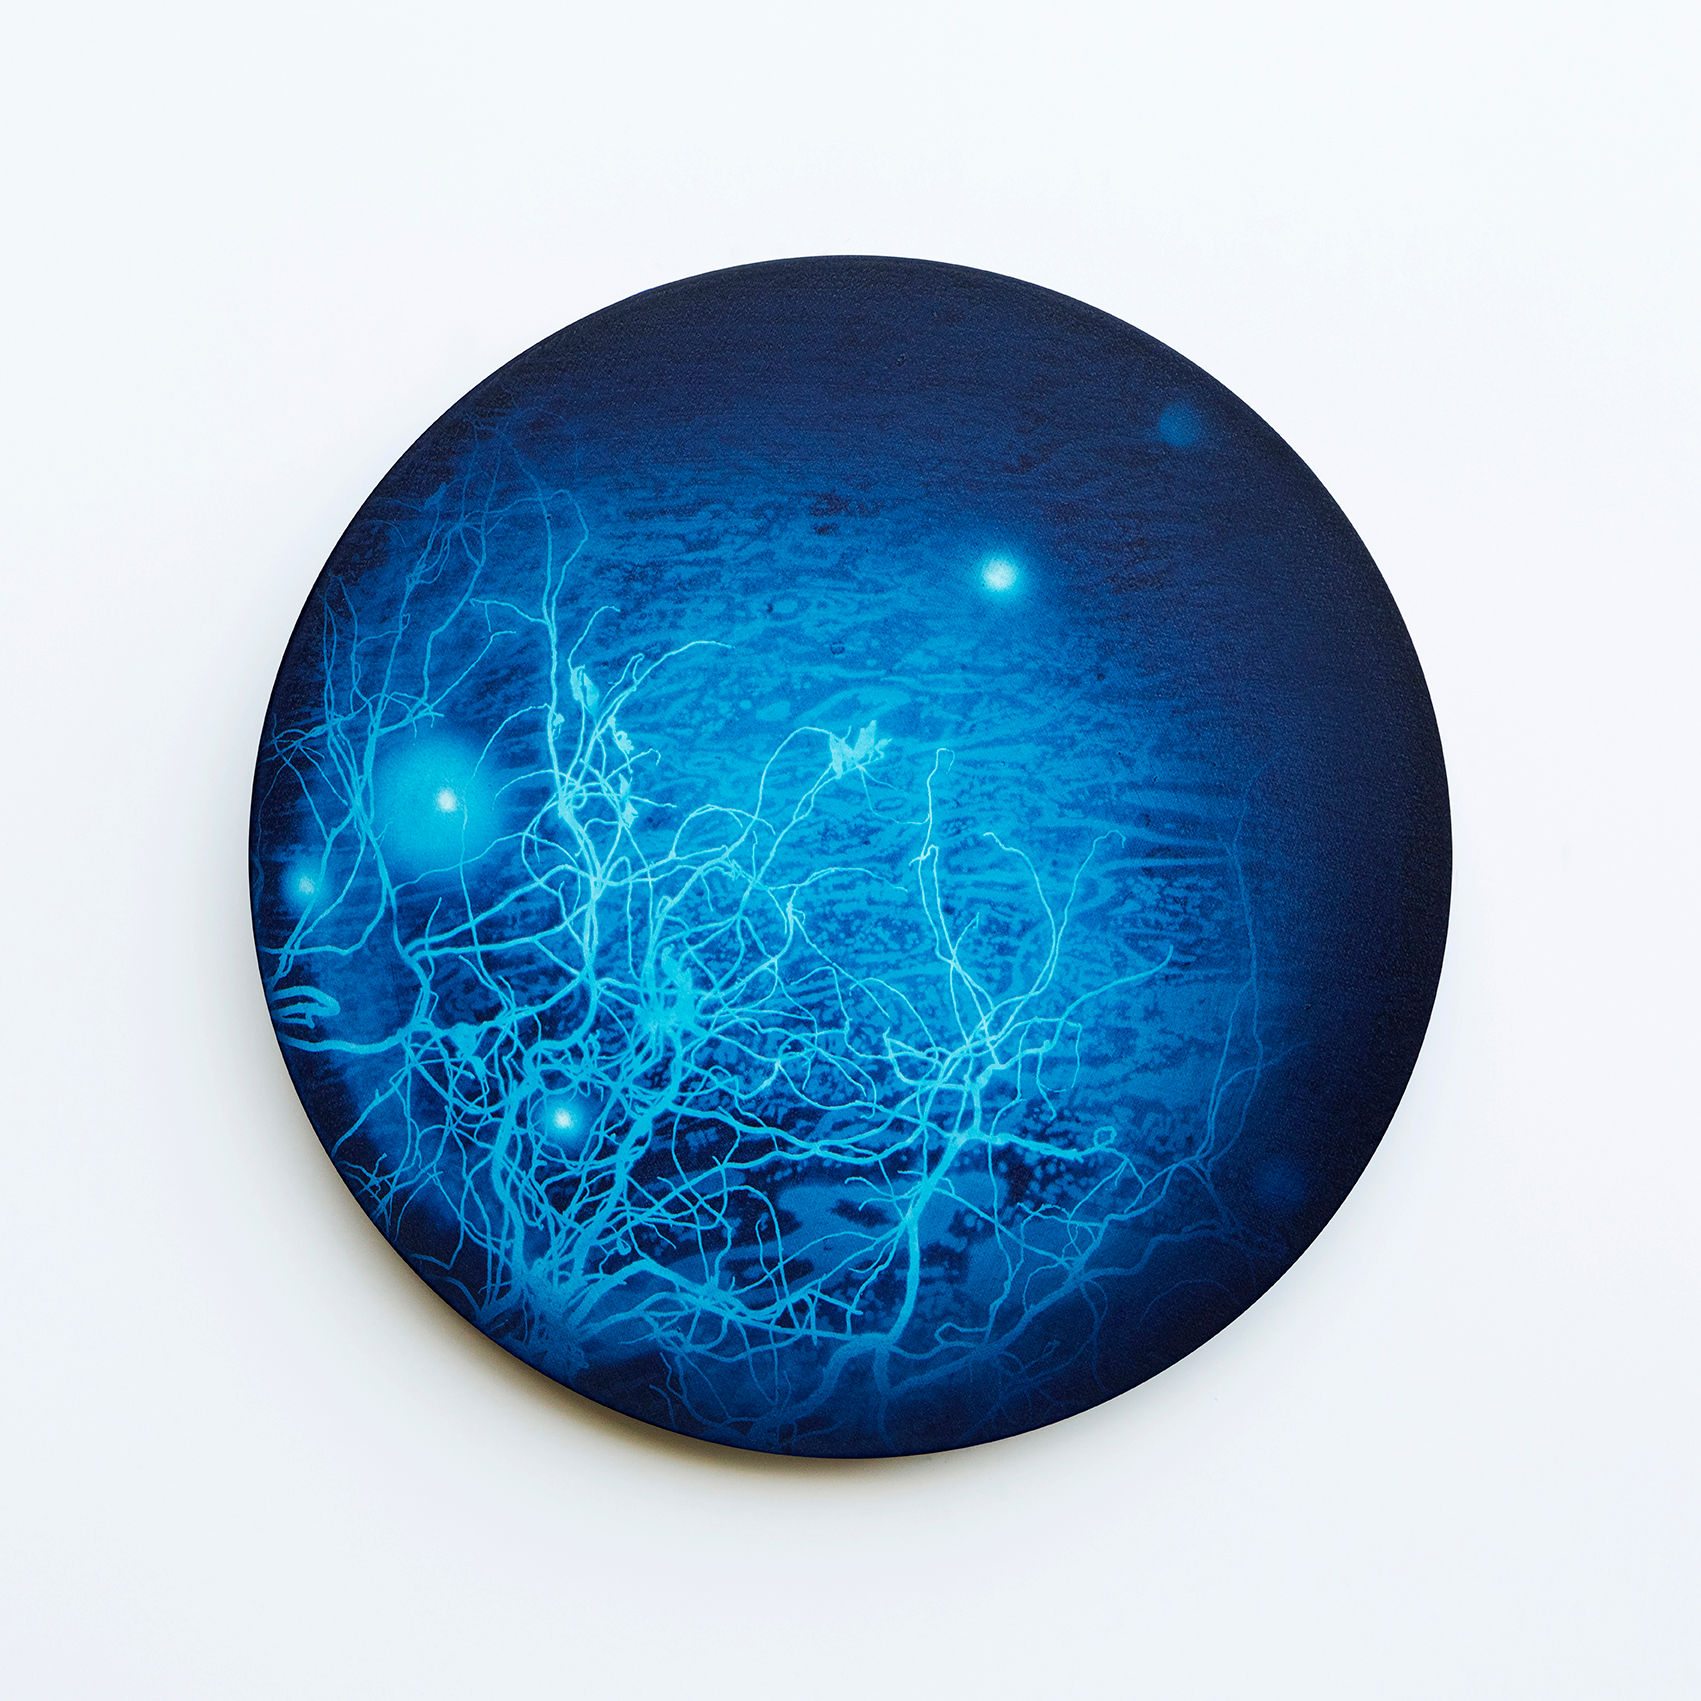 WATERSCAPE_내 안의 바깥 03, Diameter 40cm, Traditional pigment, water-print, water-drawing on canvas, 2018